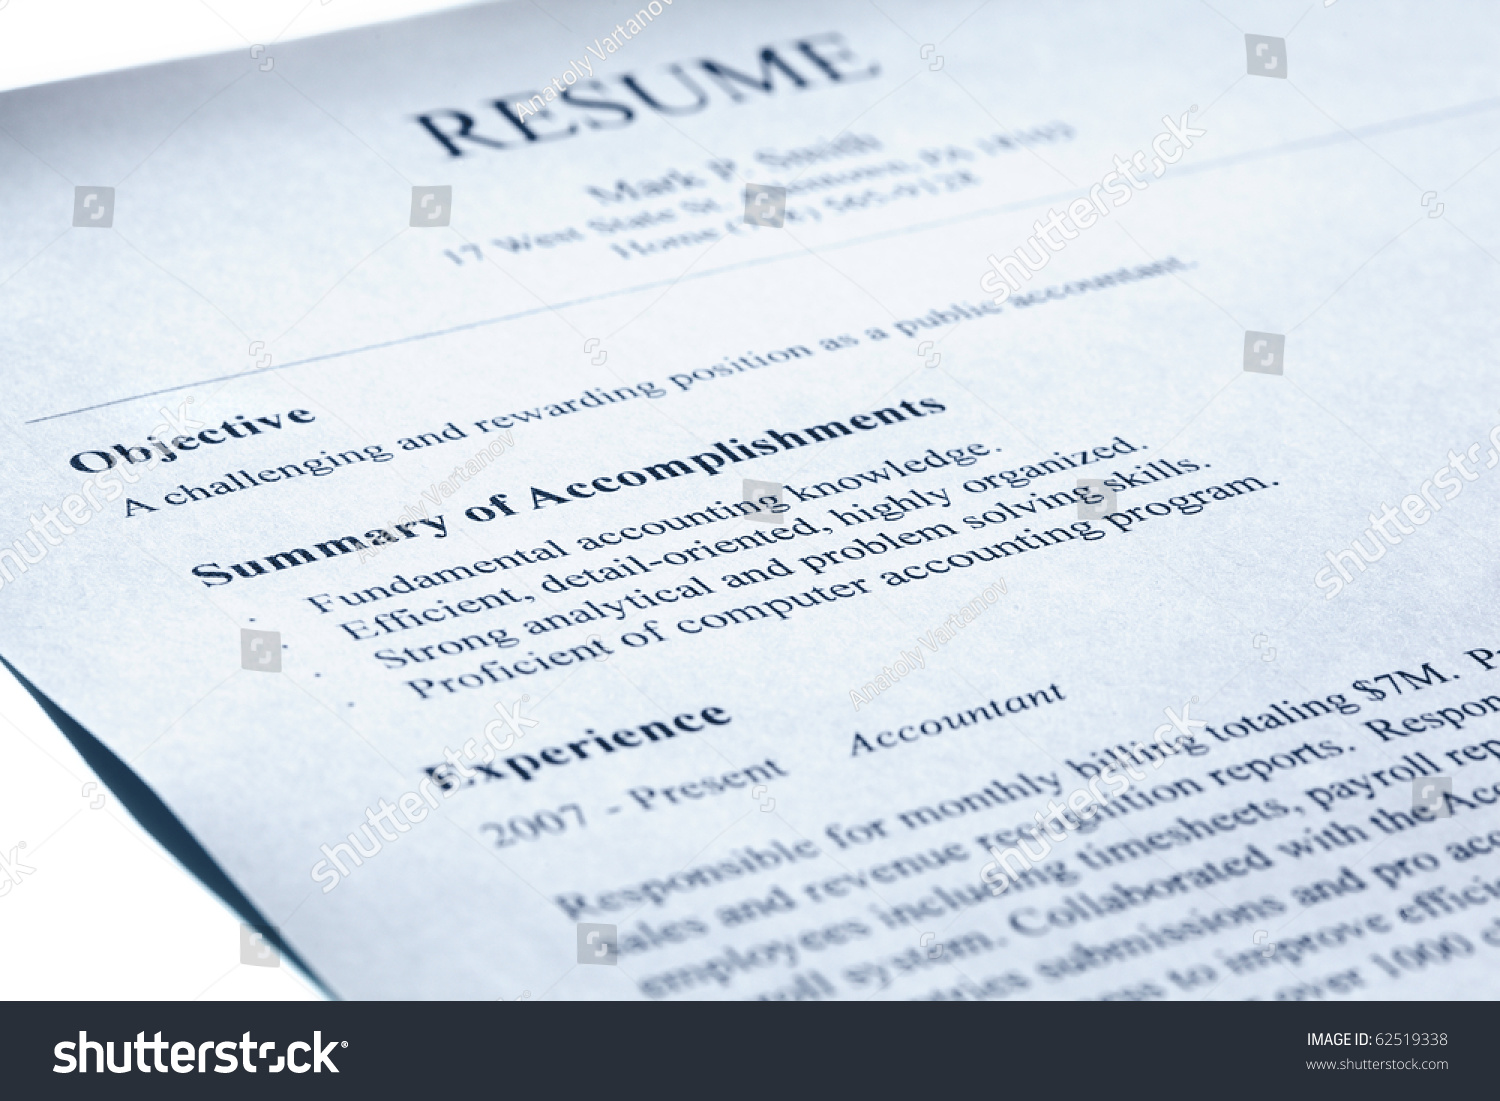 account manager resume form title page close up blue tint save to a lightbox